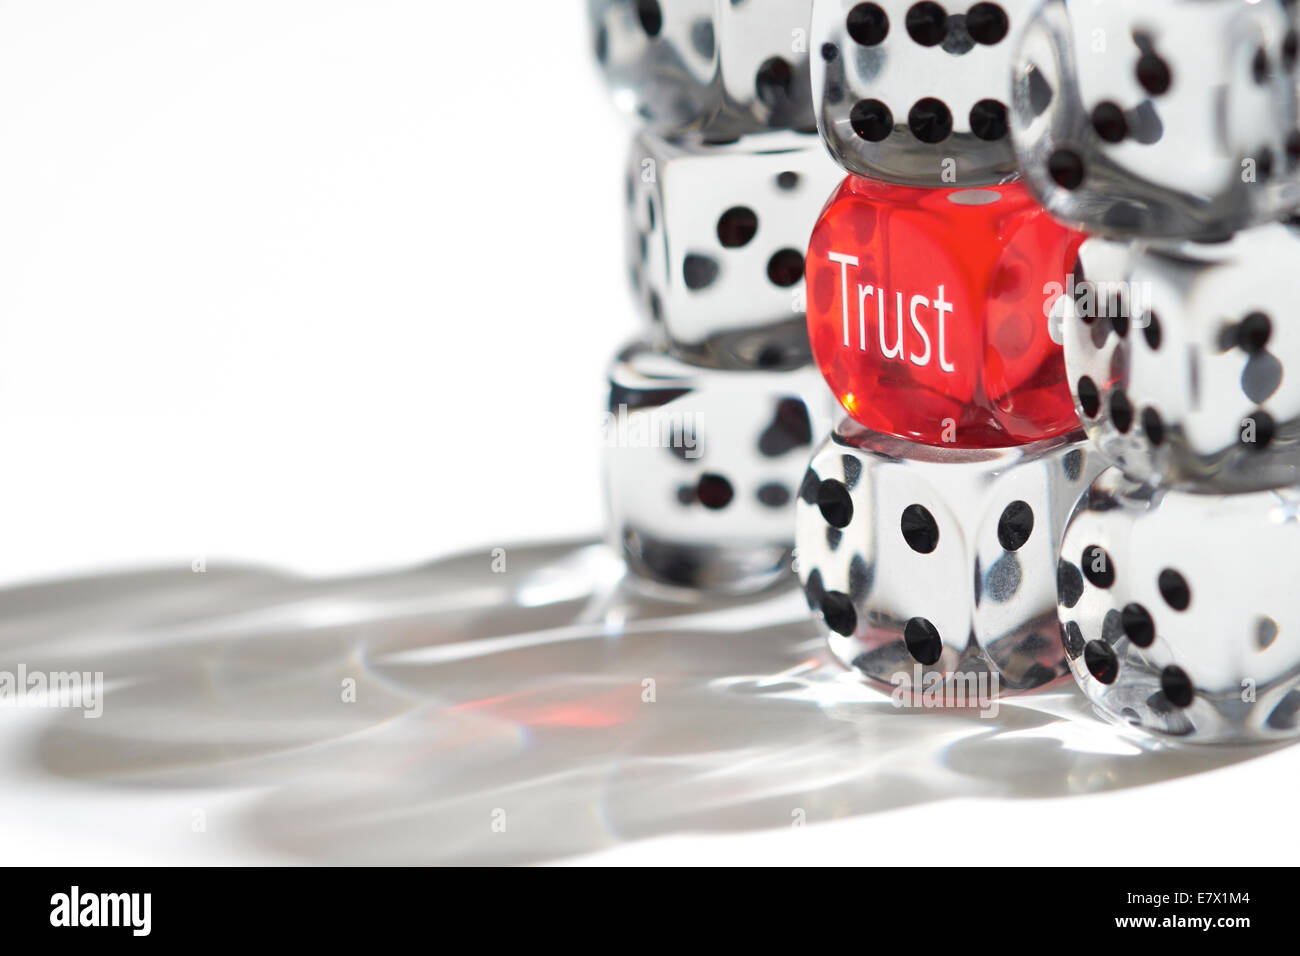 Red Dice Standing out from the crowd, Trust concept. - Stock Image